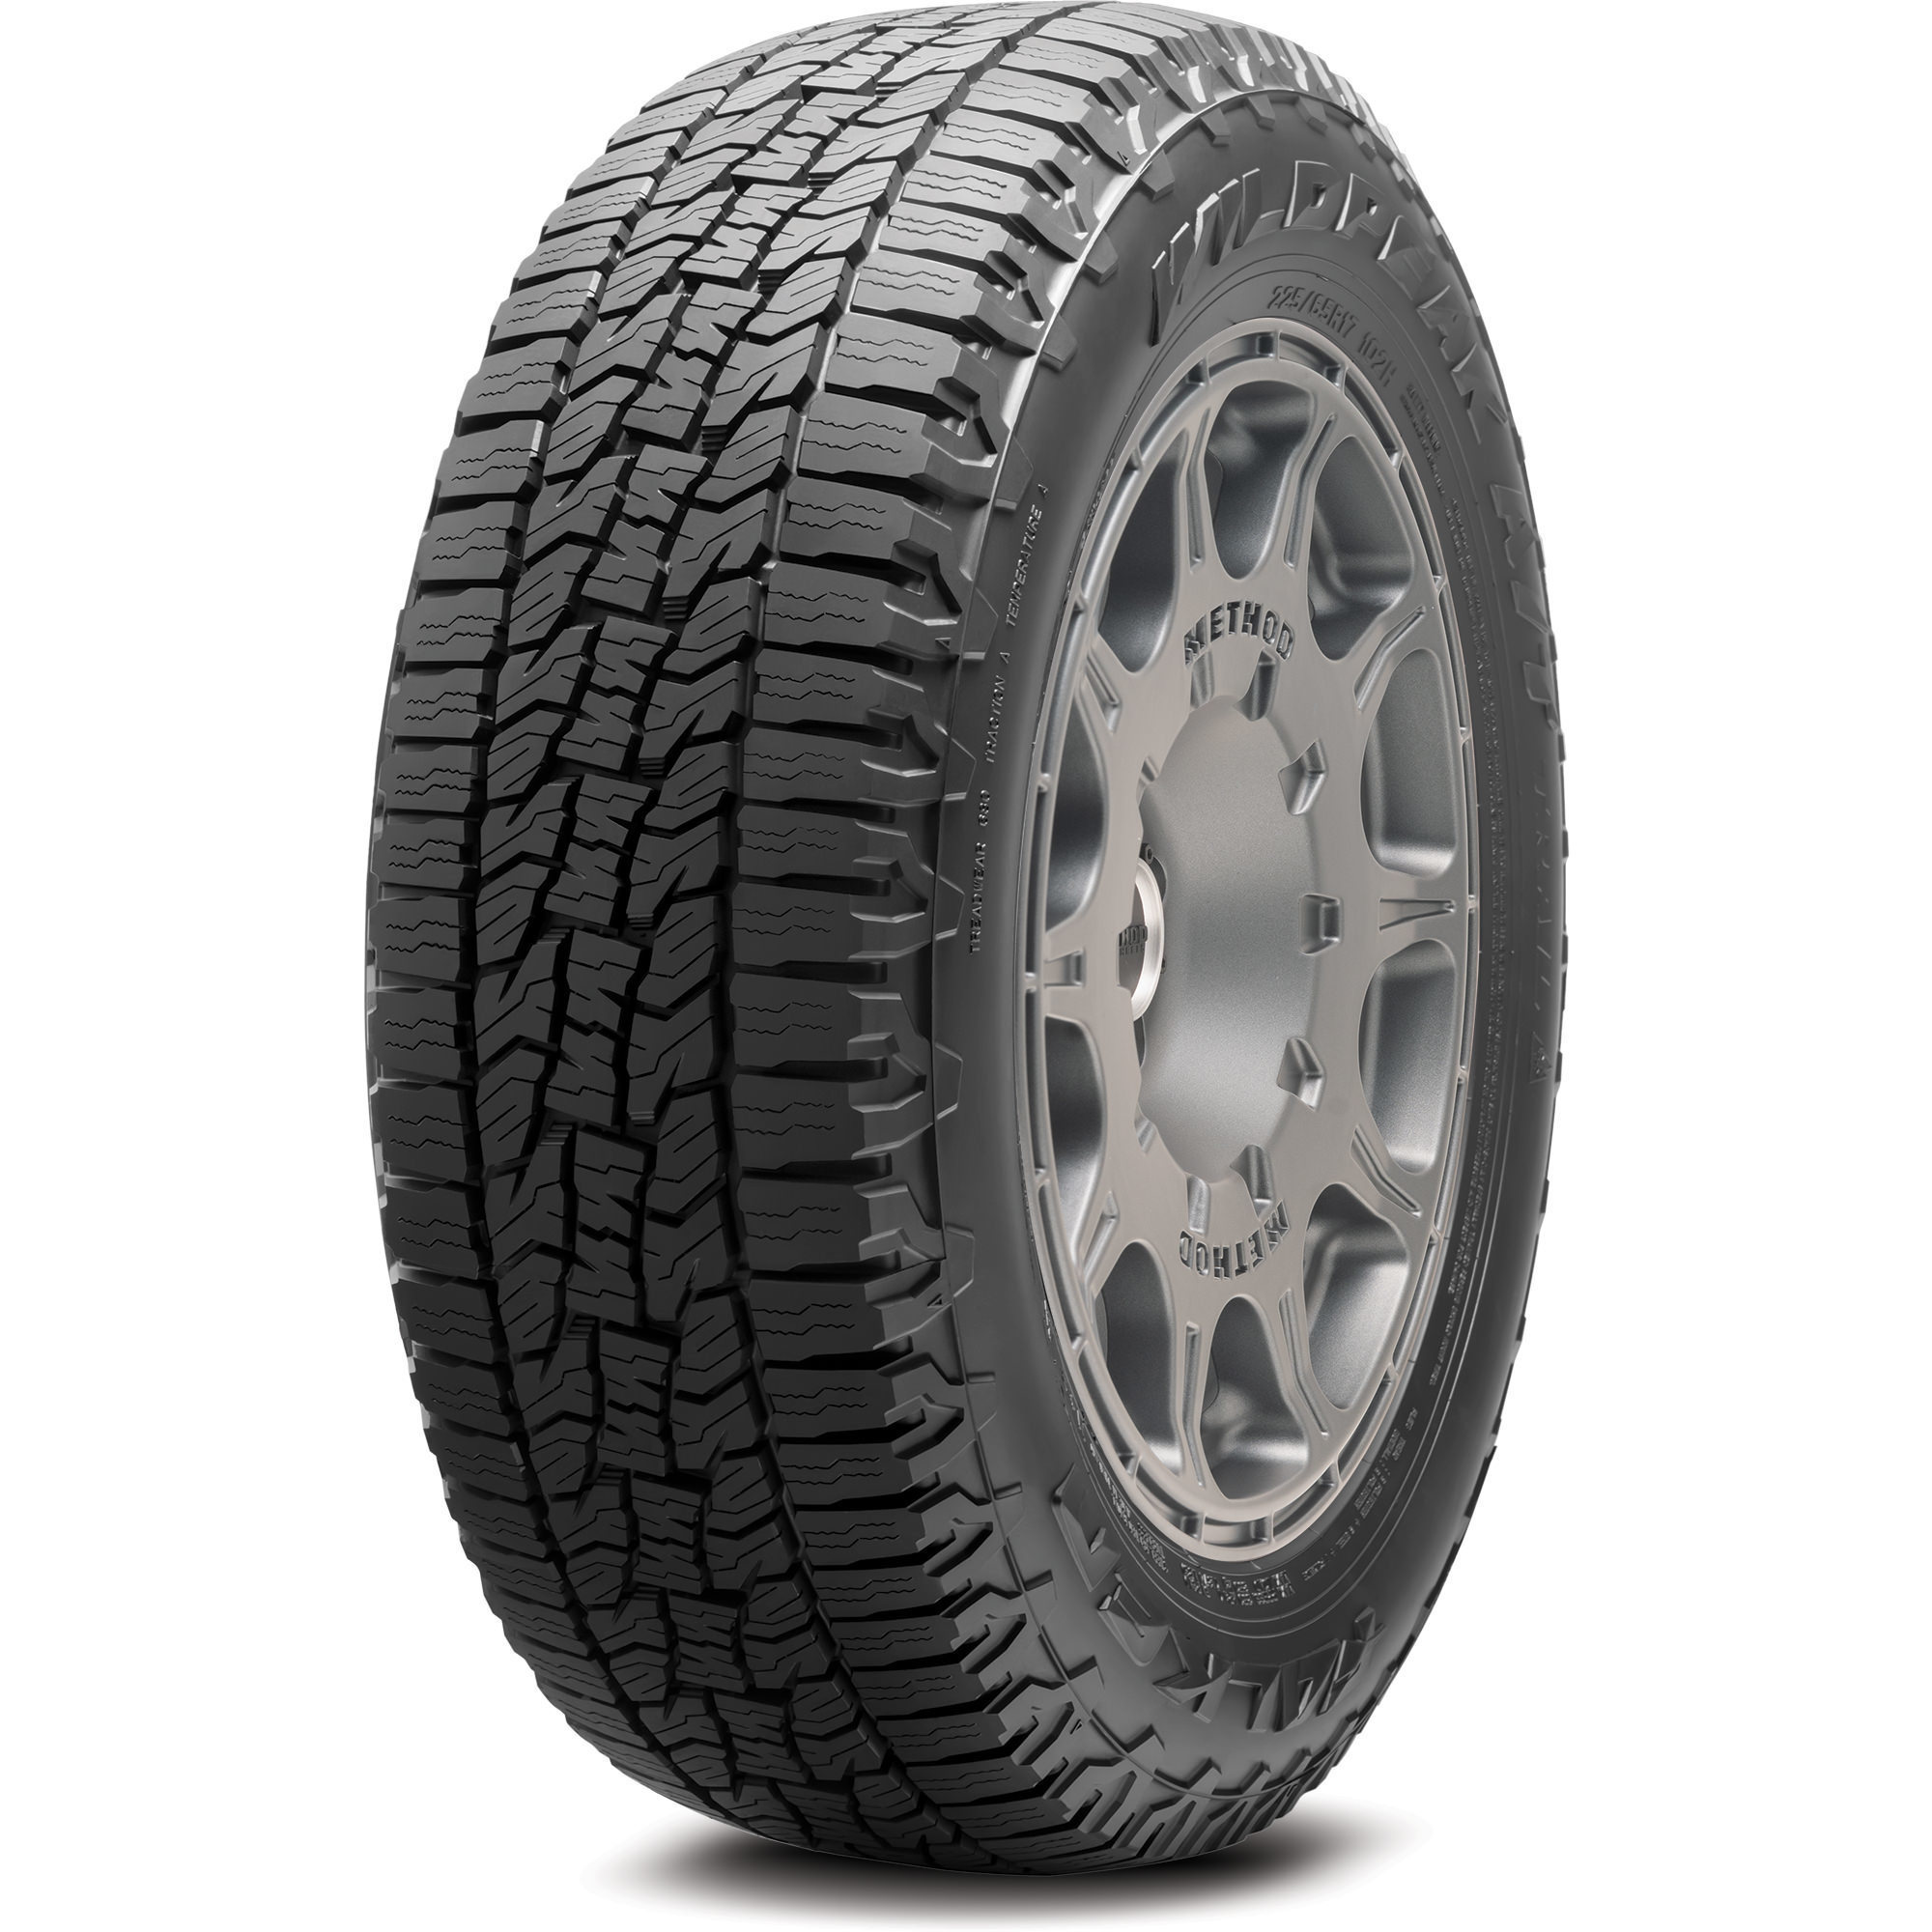 Falken Wildpeak A T Trail Tirebuyer